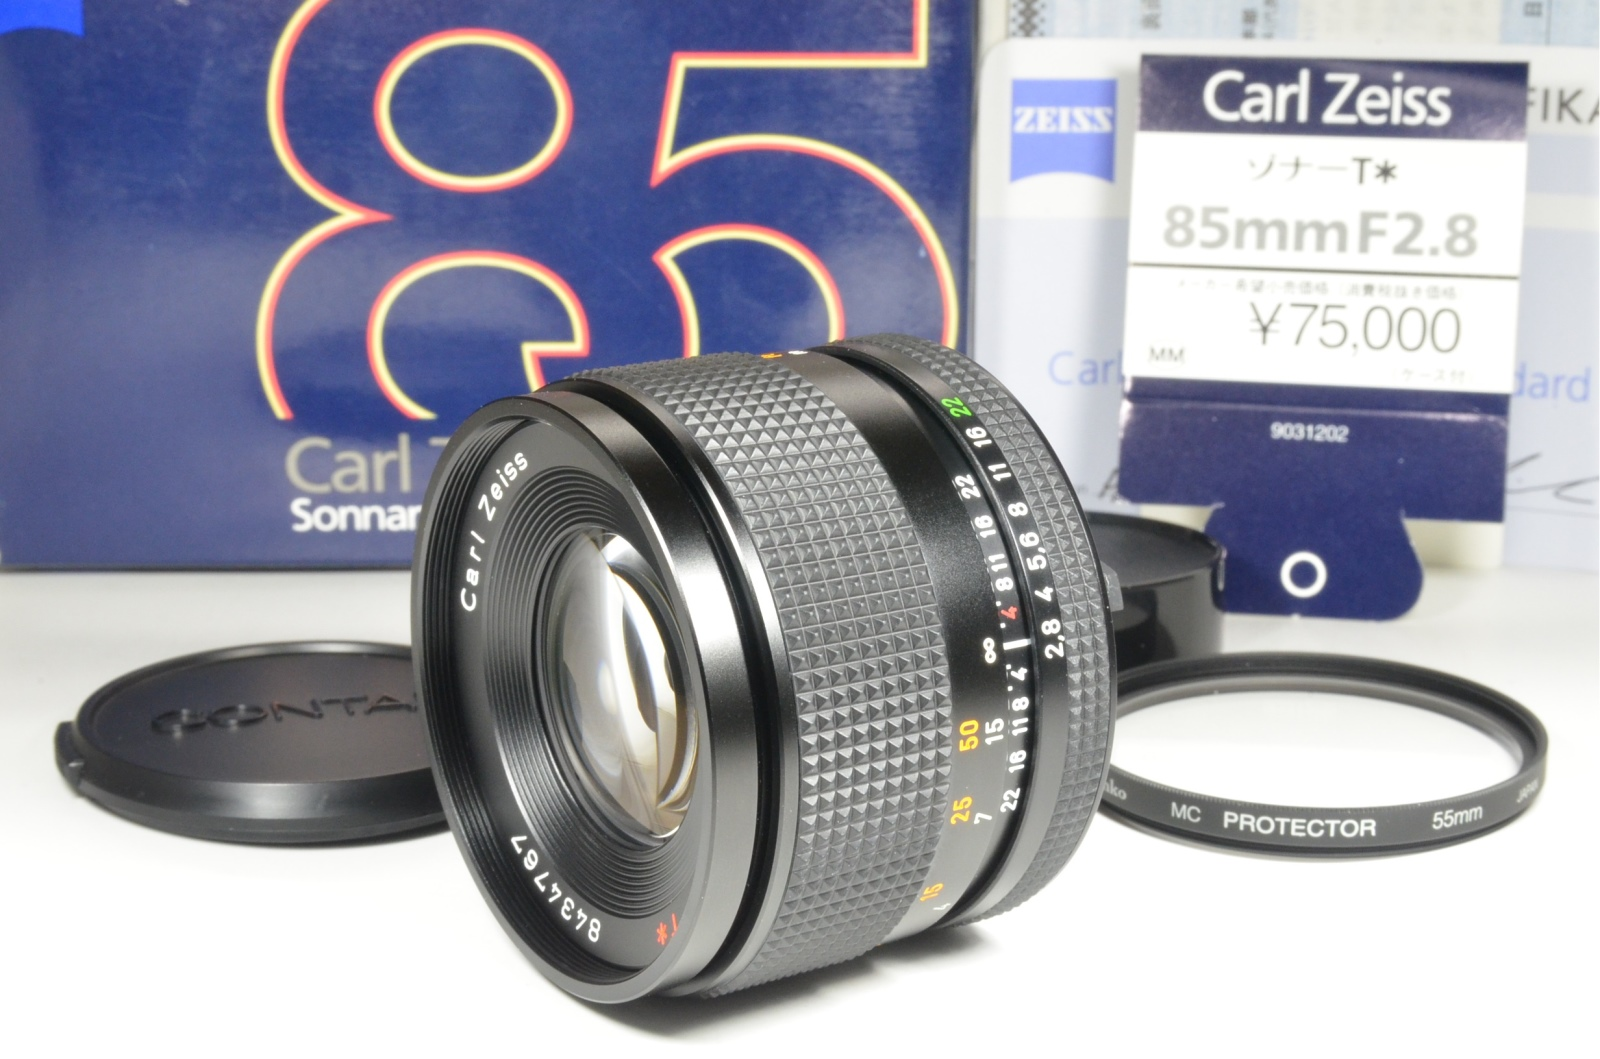 contax carl zeiss sonnar t* 85mm f2.8 mmg germany in boxed